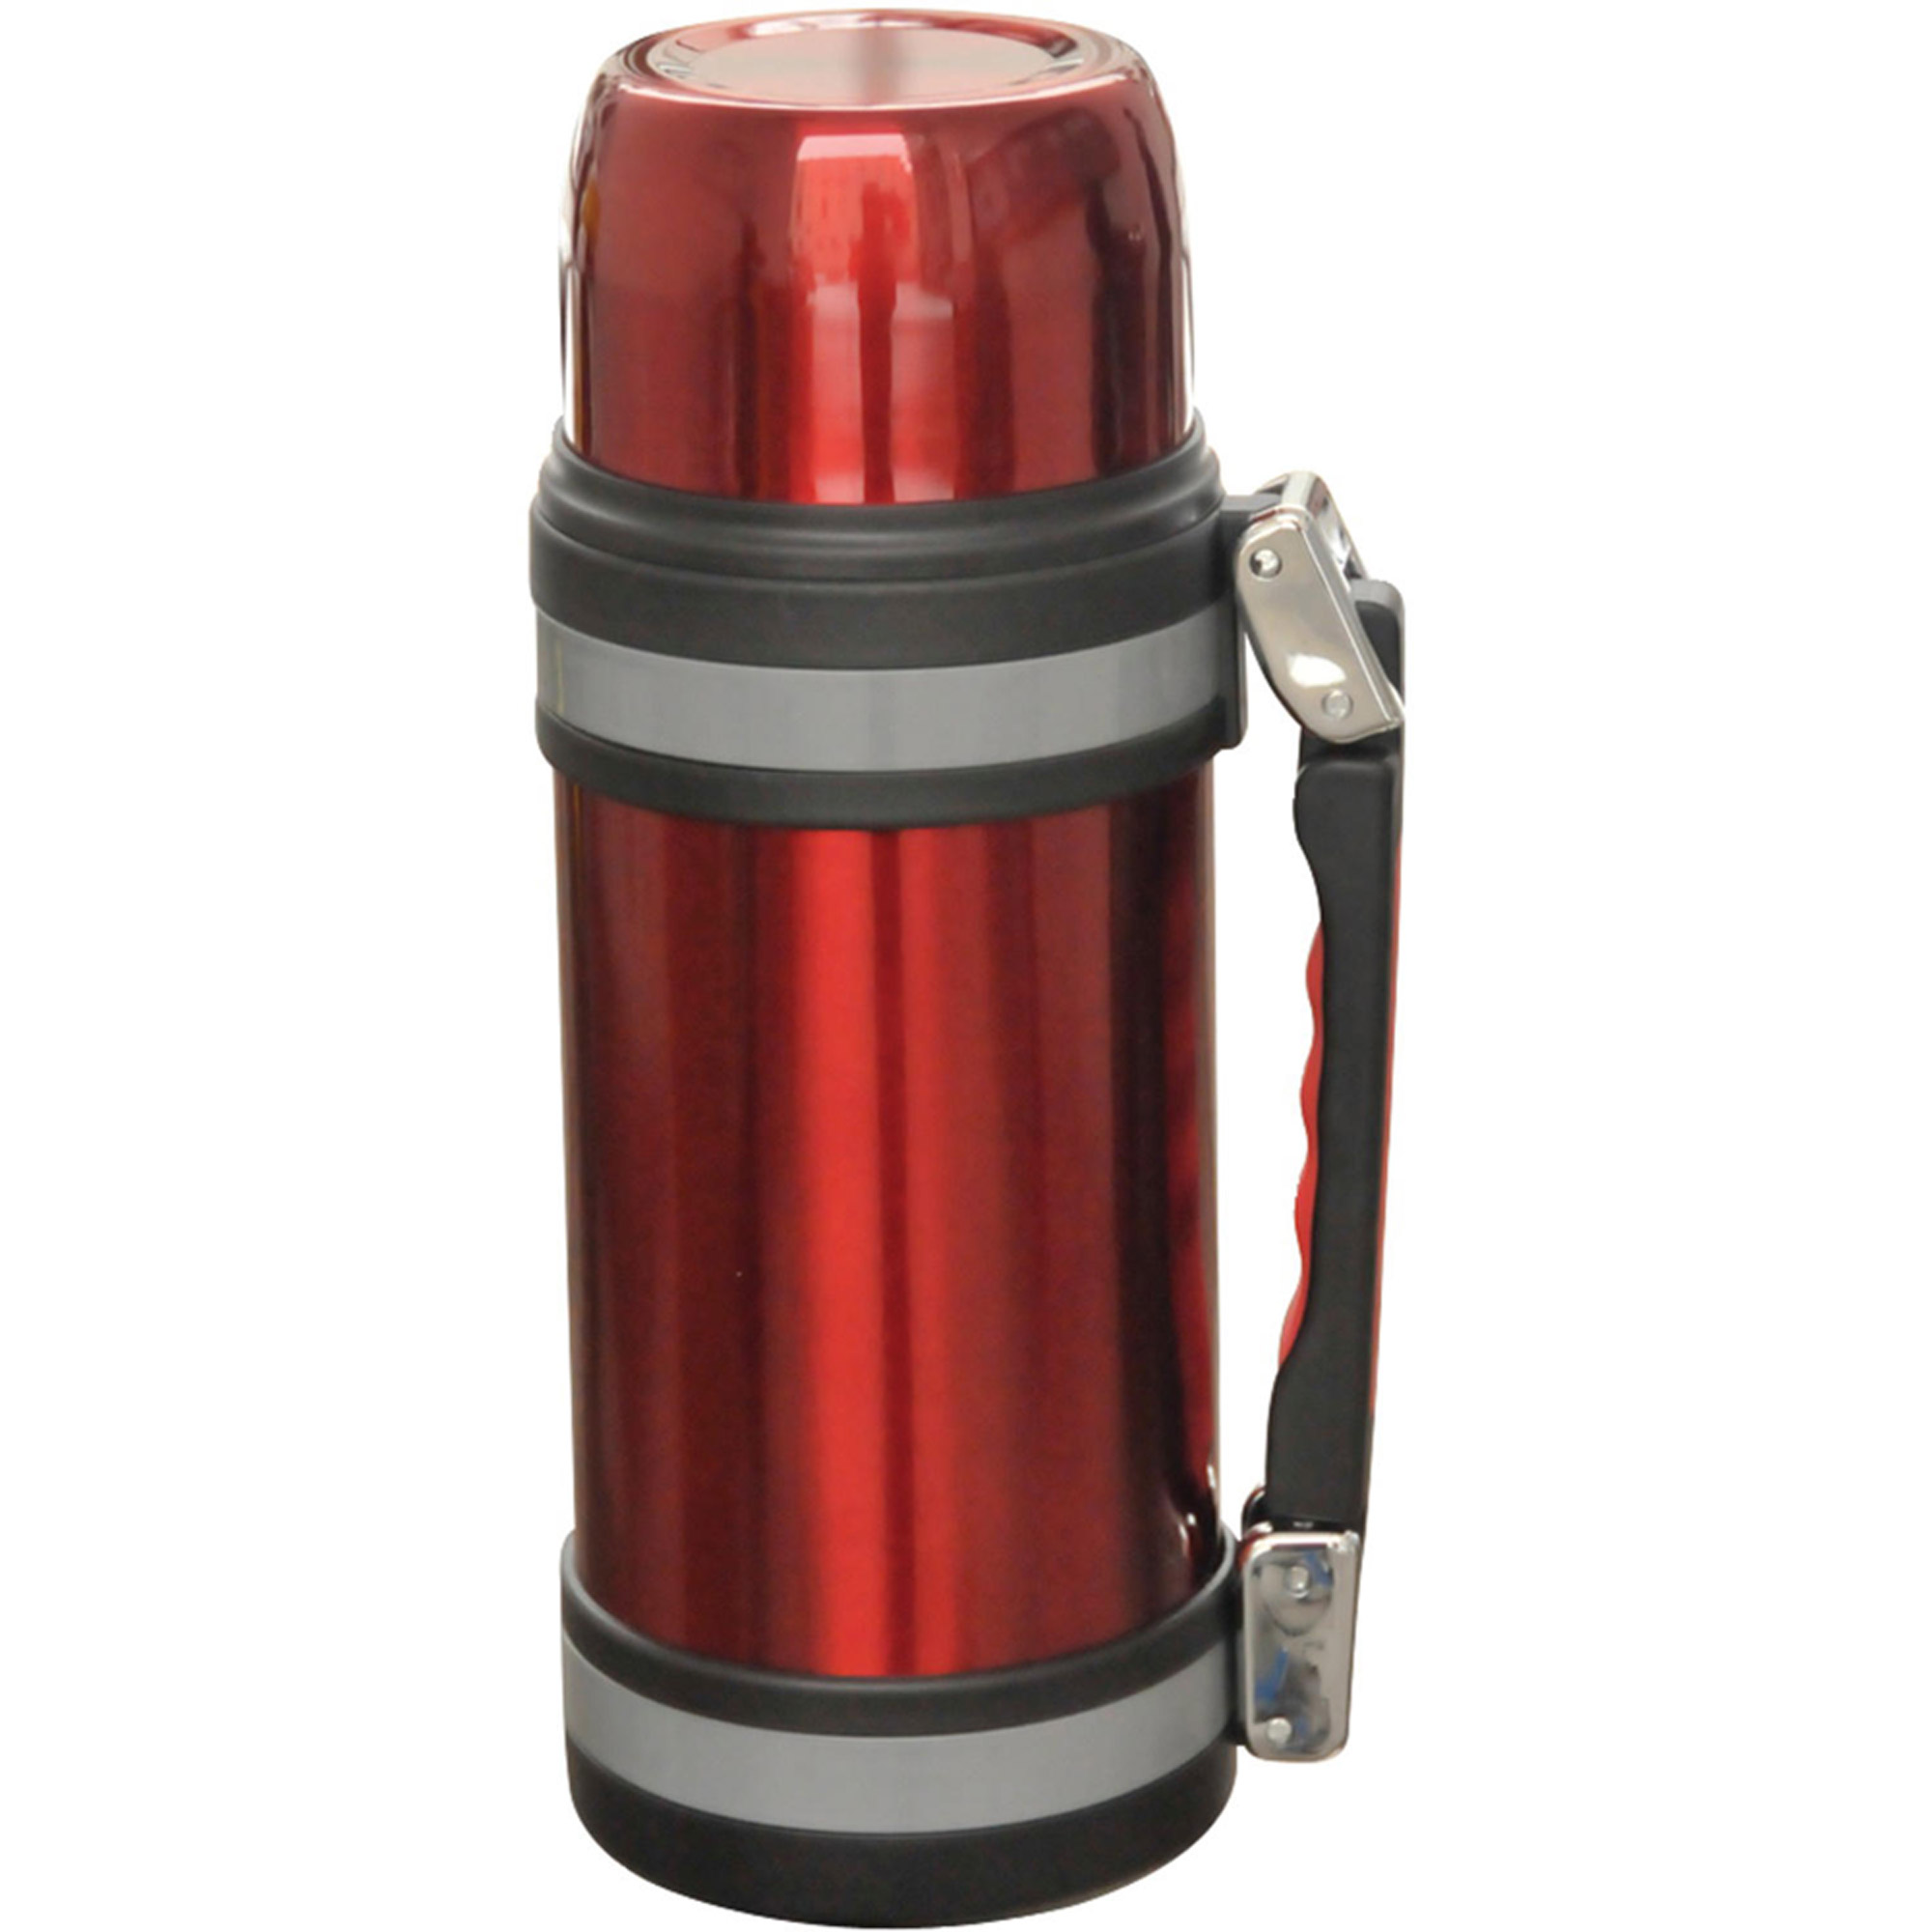 Brentwood  FTS-1200R 1.2-Liter Vacuum Bottle with Handle, Red Stainless Steel